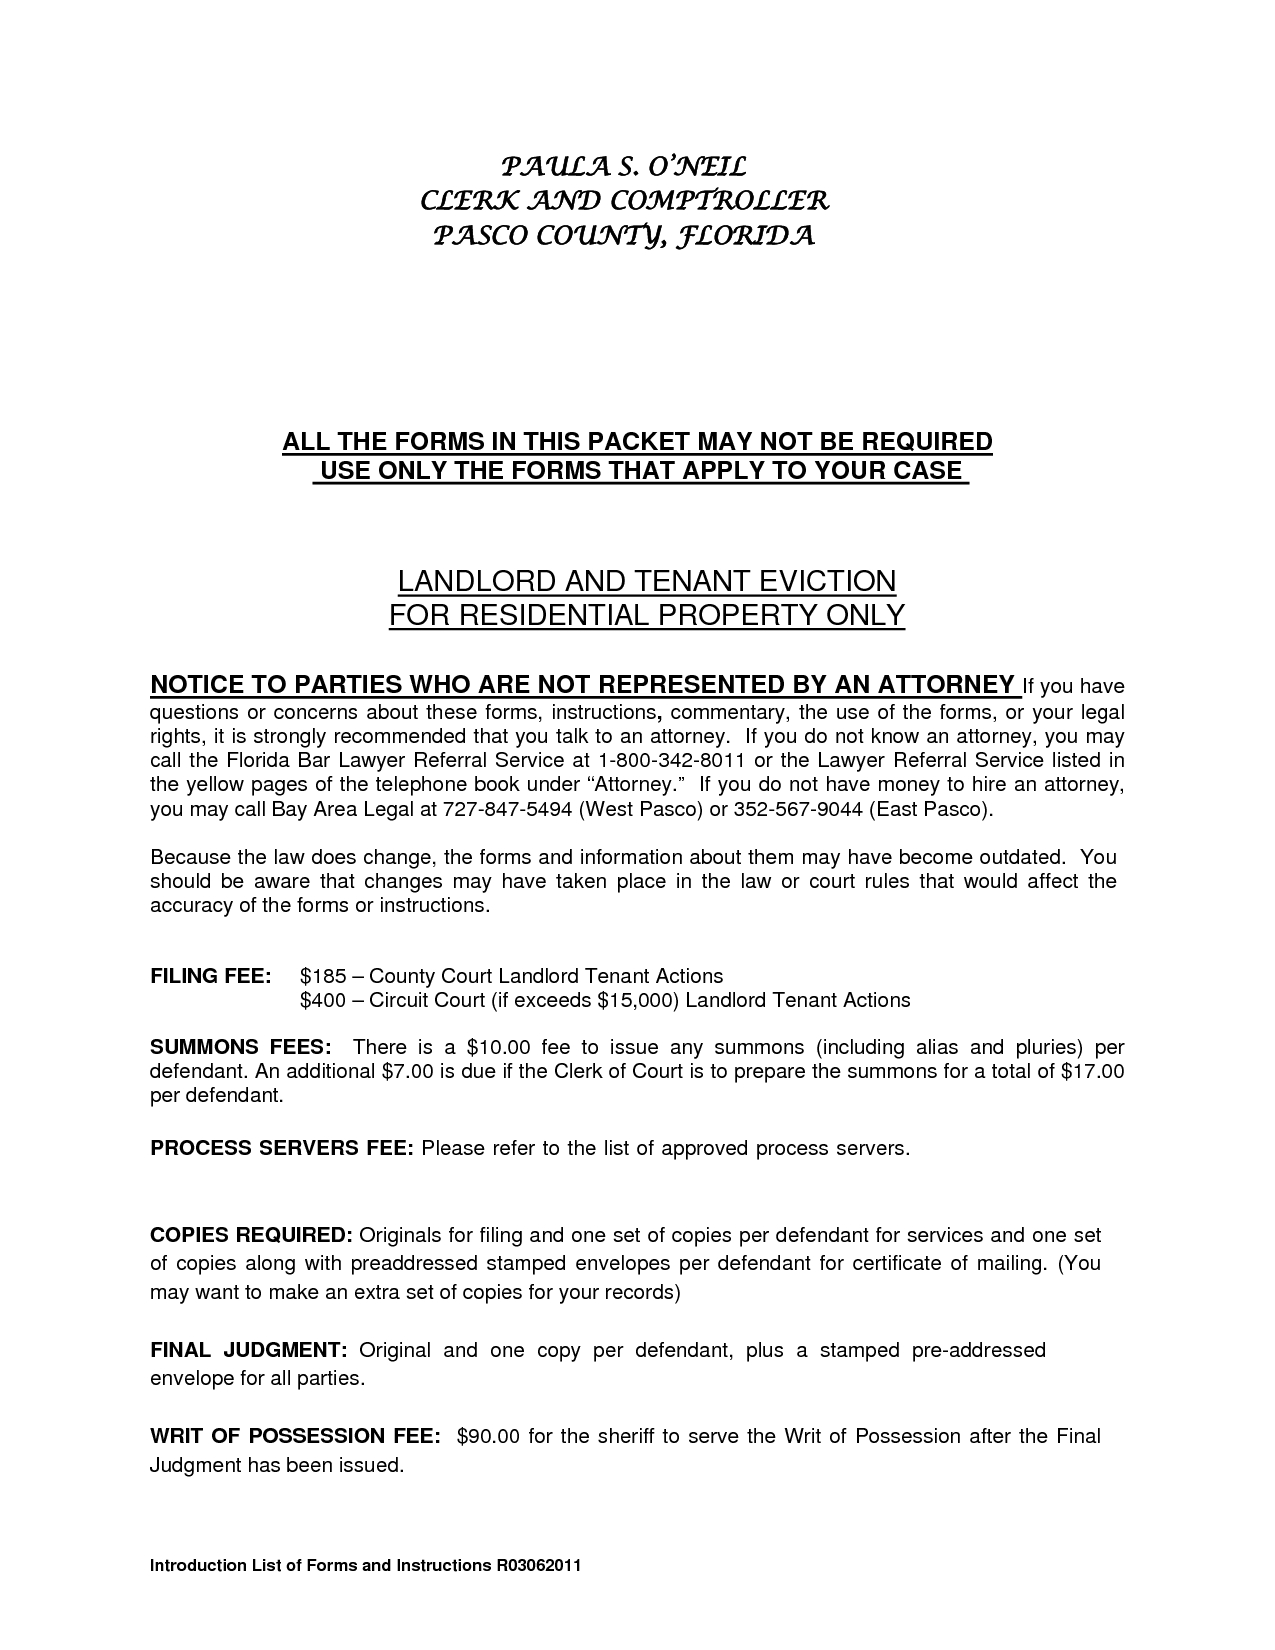 Constructive Eviction Letter Template - Residential Landlord Tenant Eviction Notice form by Ere